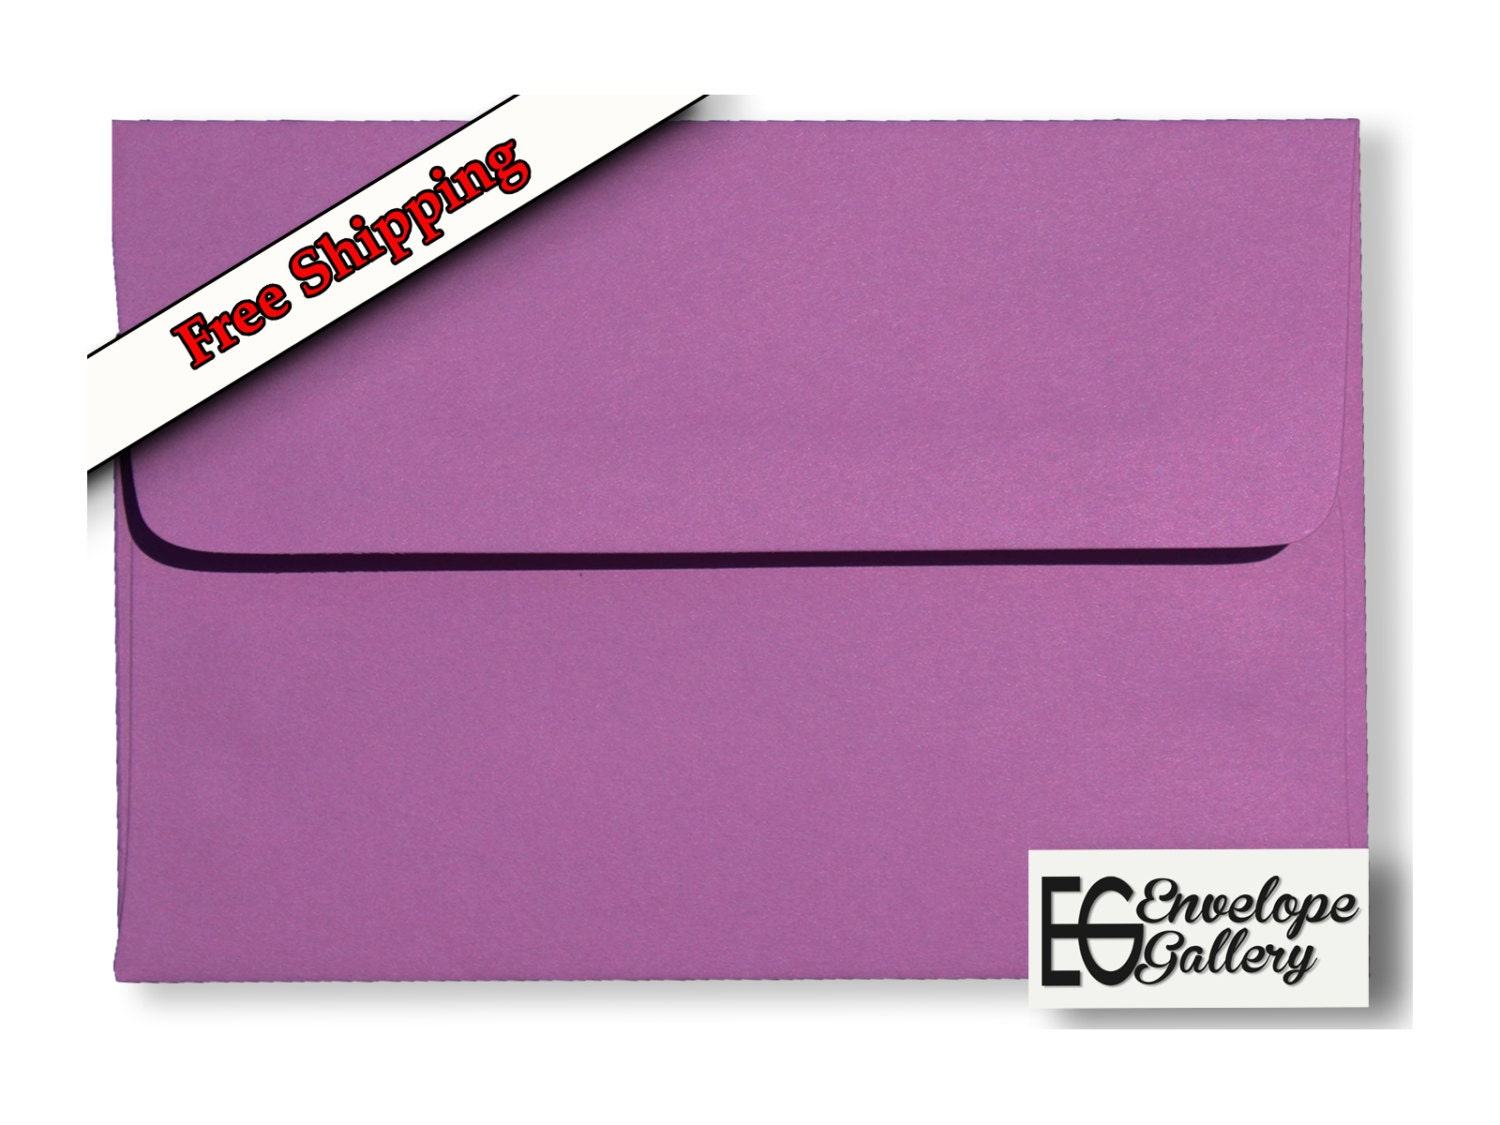 amethyst purple a7 50 boxed envelopes for invitations